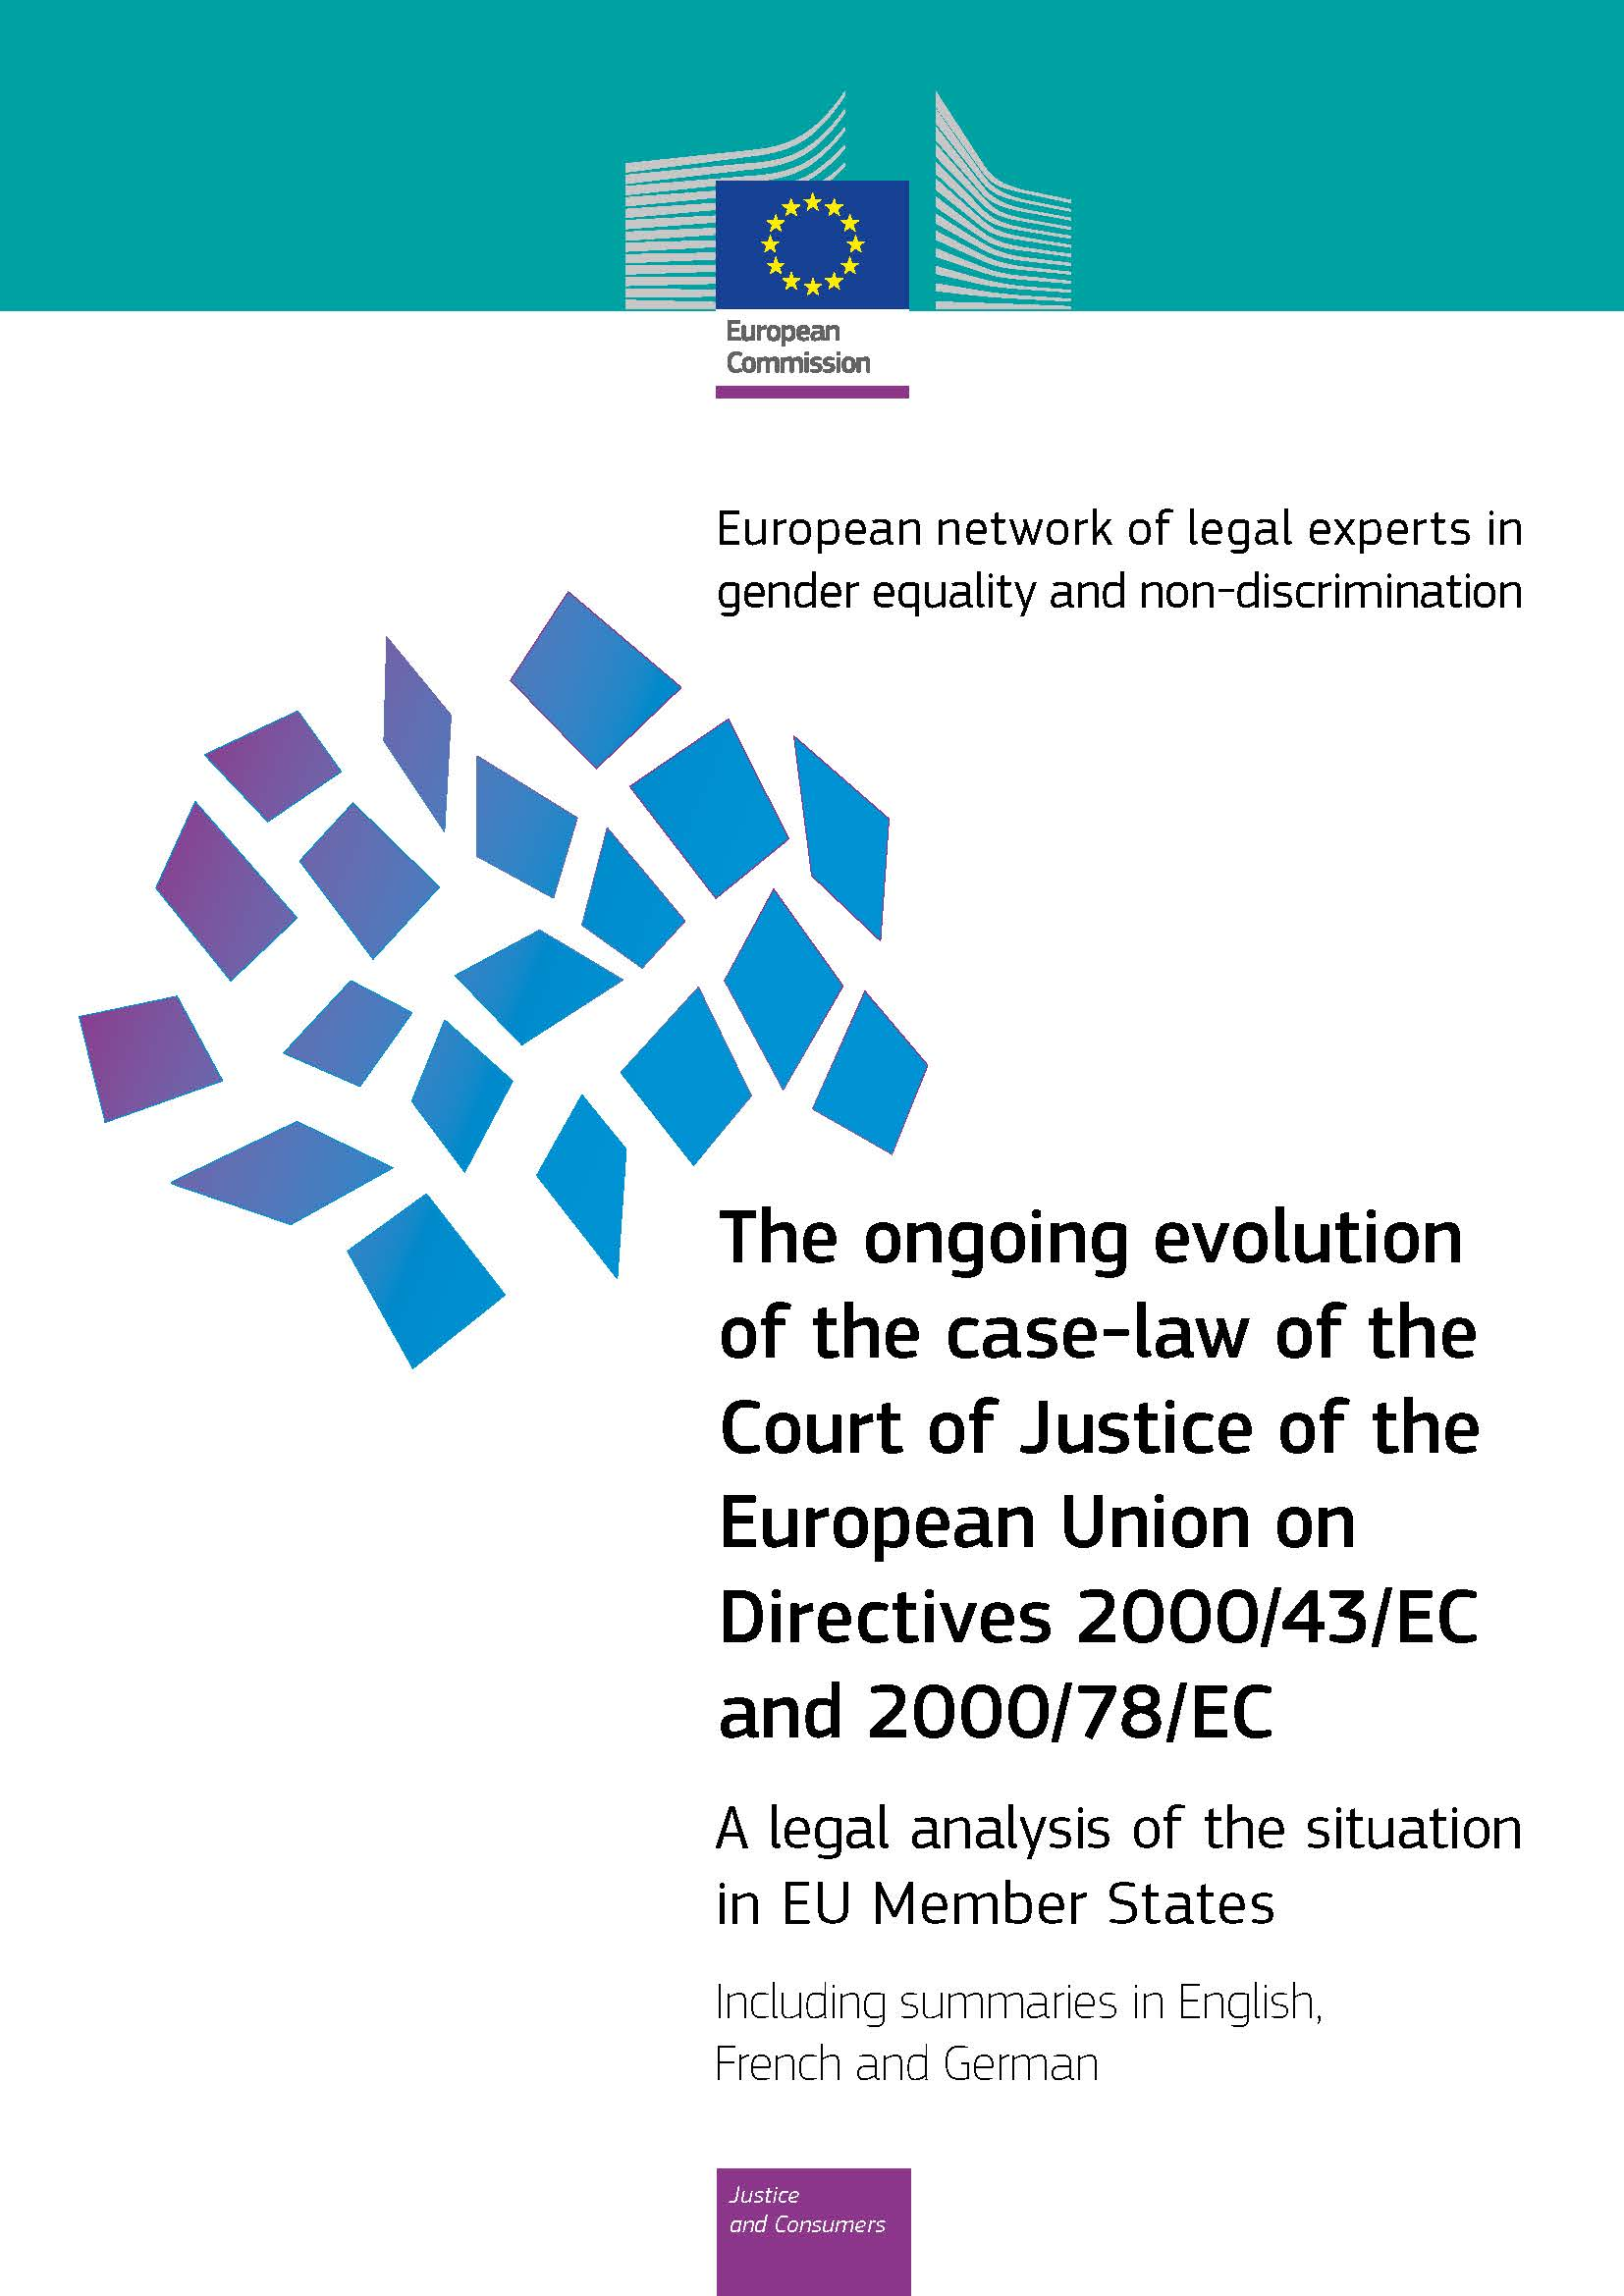 Cover image of The ongoing evolution of the case-law of the Court of Justice of the European Union on Directives 2000/43/EC and 2000/78/EC